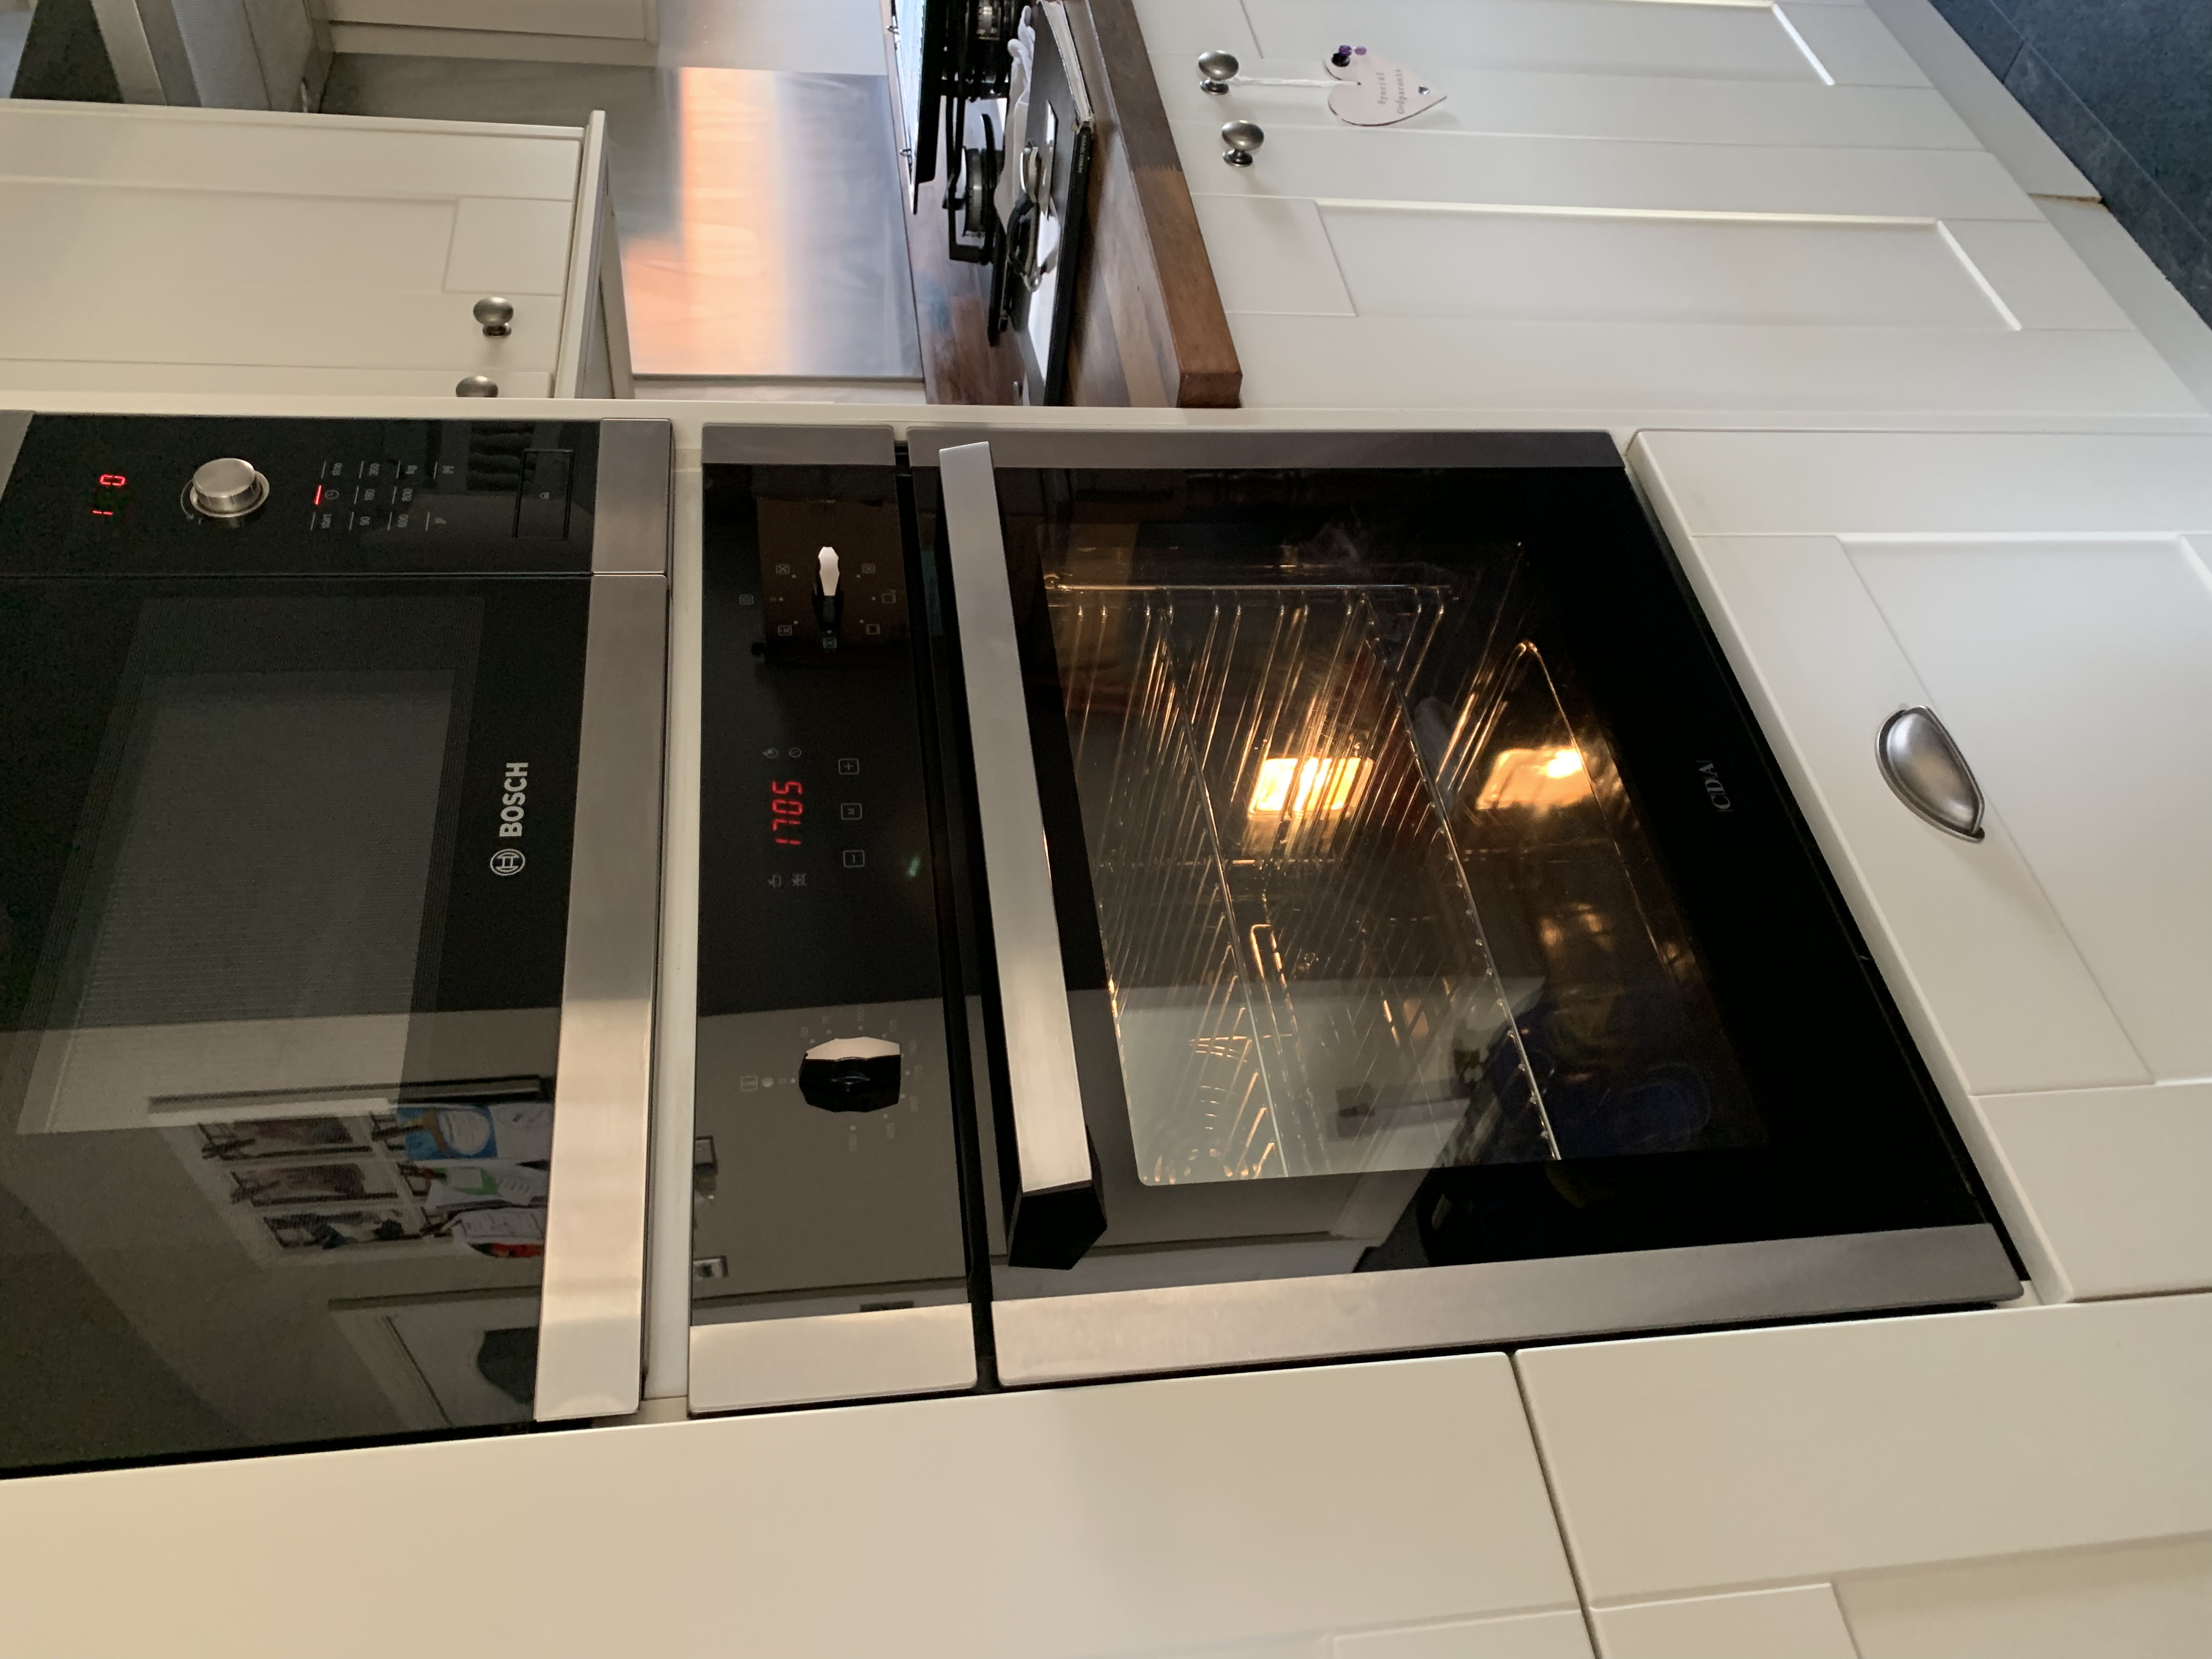 Clean - Professional Oven Cleaning Service | Liversedge WF15 8JE | +44 7594 685238